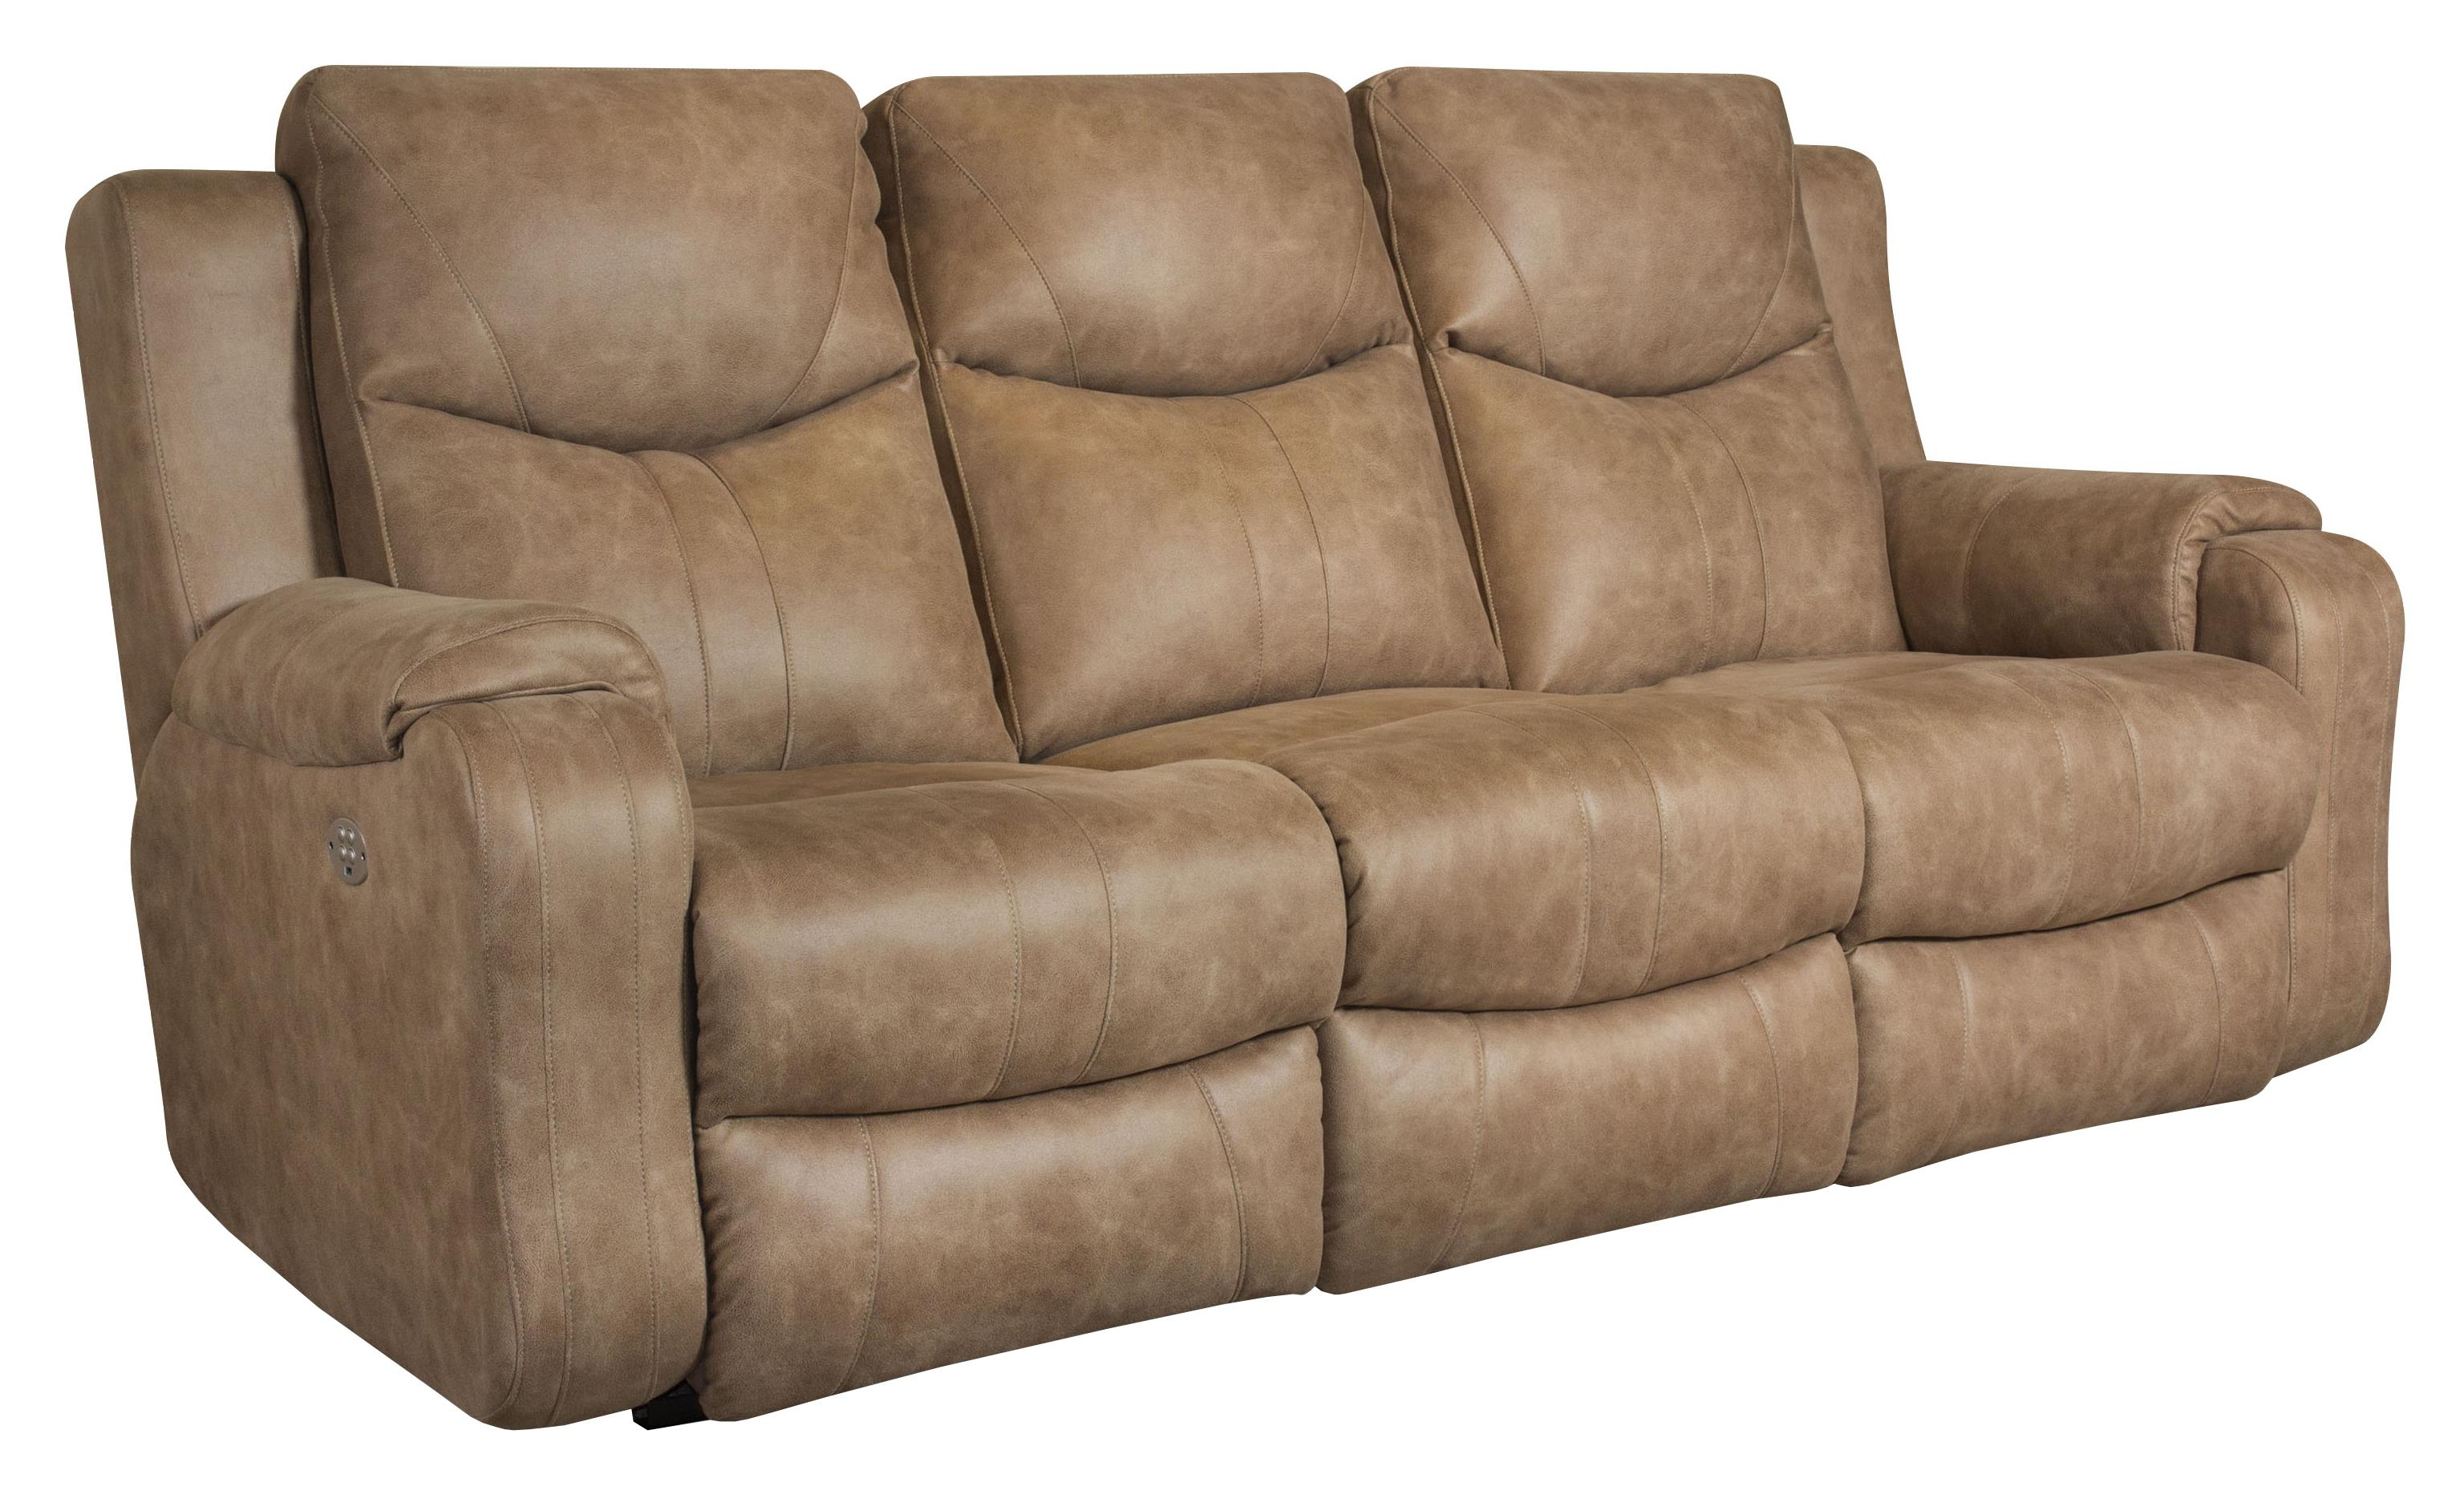 Double Recliner Chair Marvel Double Reclining Contemporary Sofa By Southern Motion At Furniture And Appliancemart